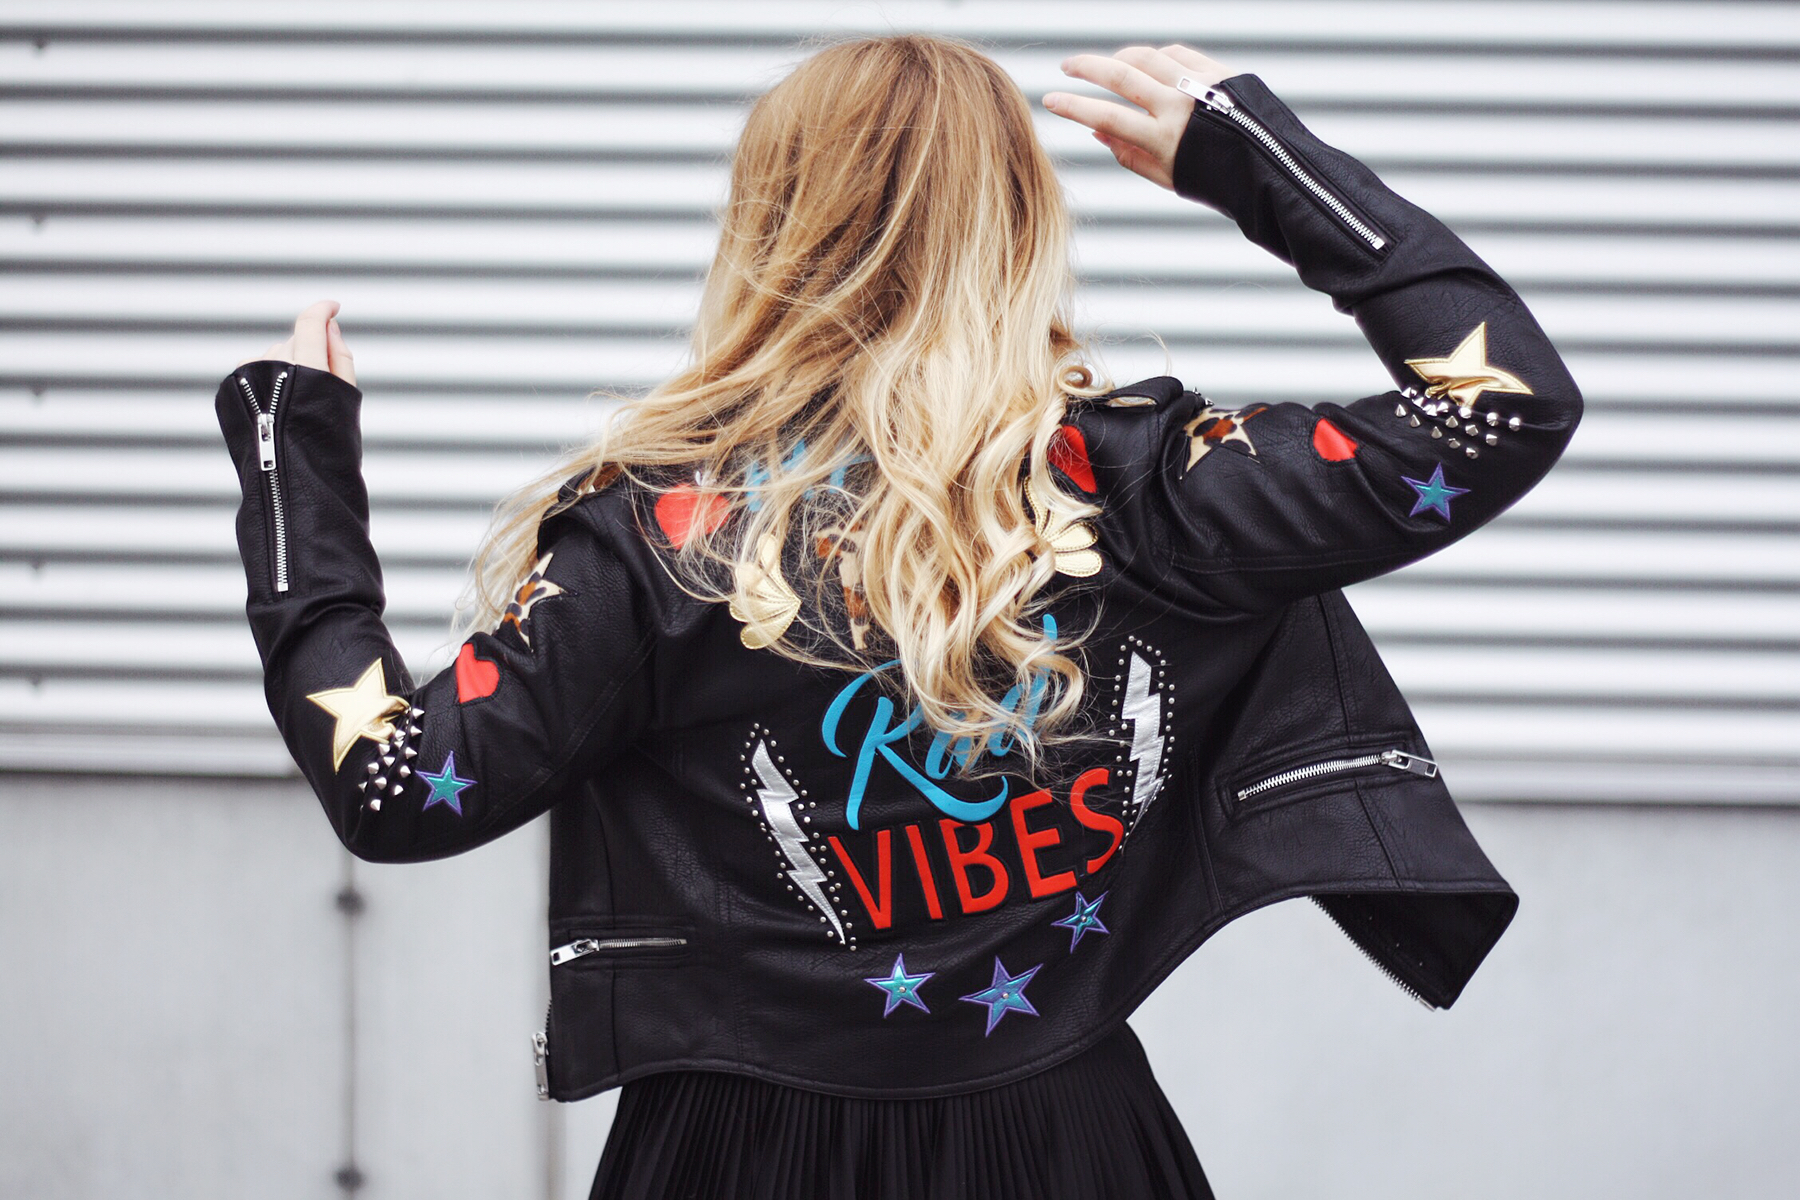 lederjacke_have_the_rad_vibes_bershka_itsgoldie_its_goldie_modeblog_fashionblog_hannover_instagram_styleinspiration_trend_patches_bloggerstyle